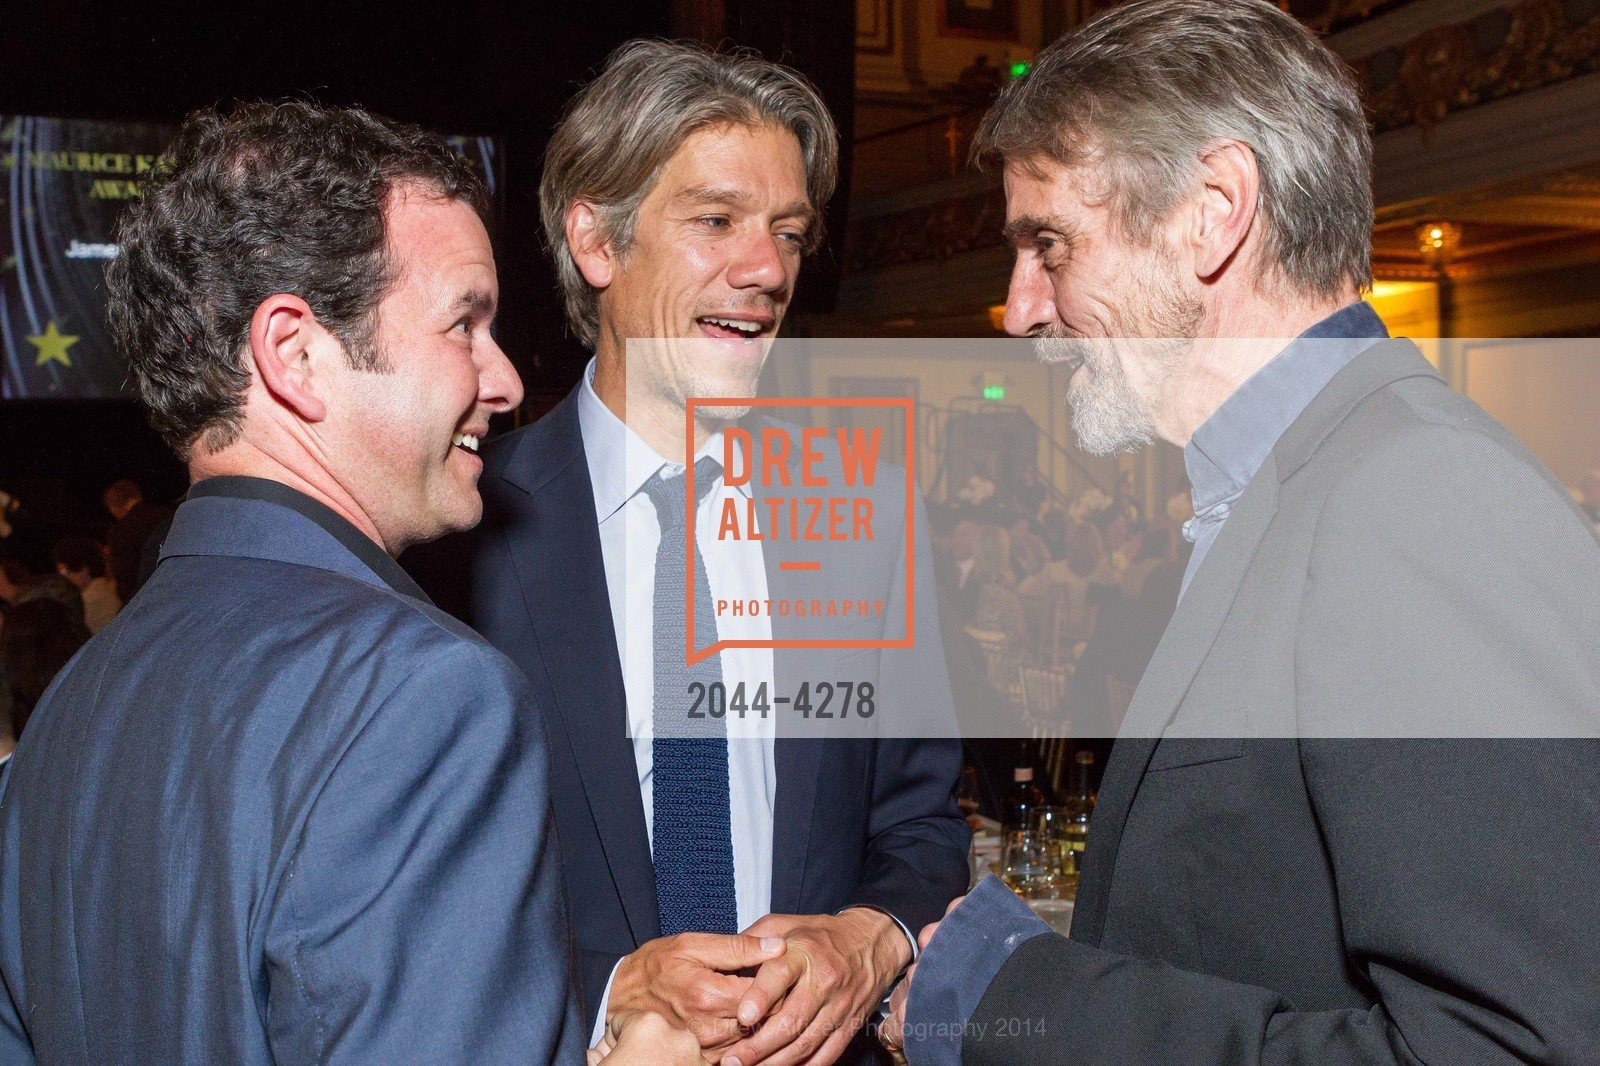 Stephen Gaghan, Jeremy Irons, Photo #2044-4278